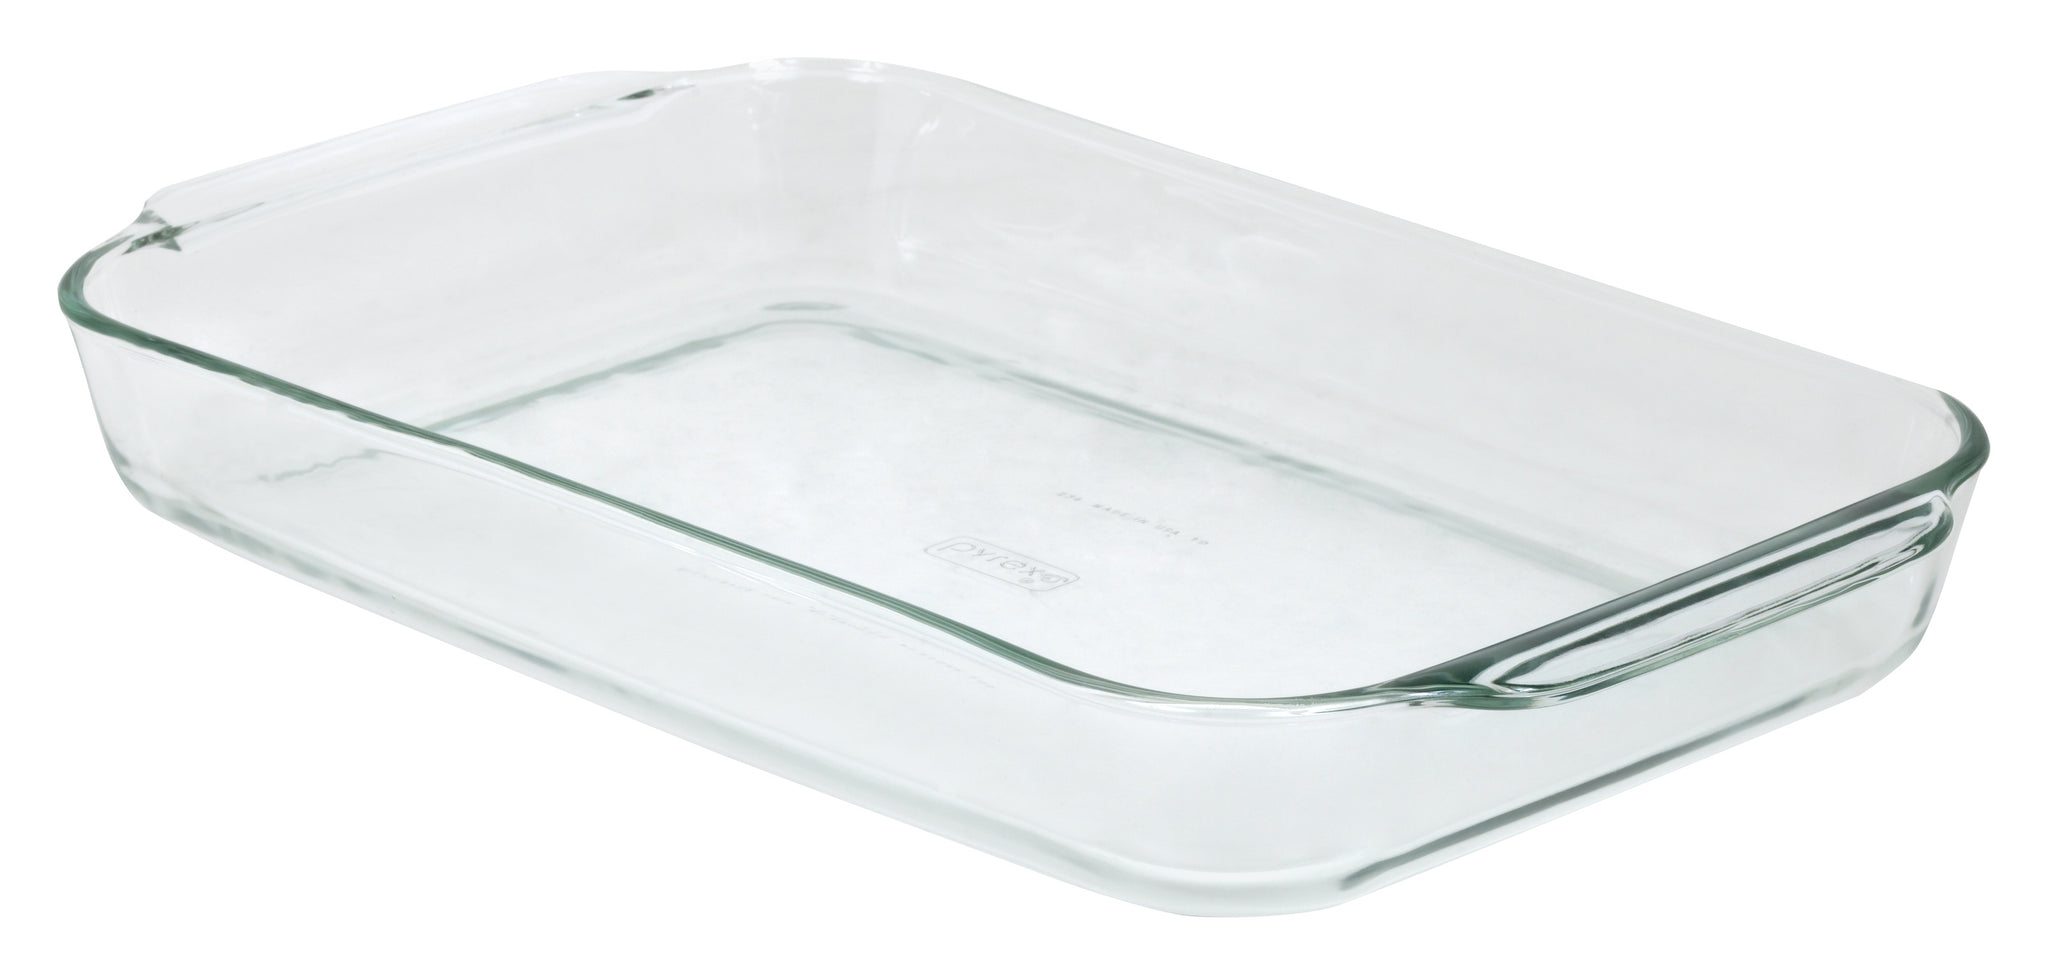 Pyrex Originals 4.5L Oblong Baking Dish-6001040